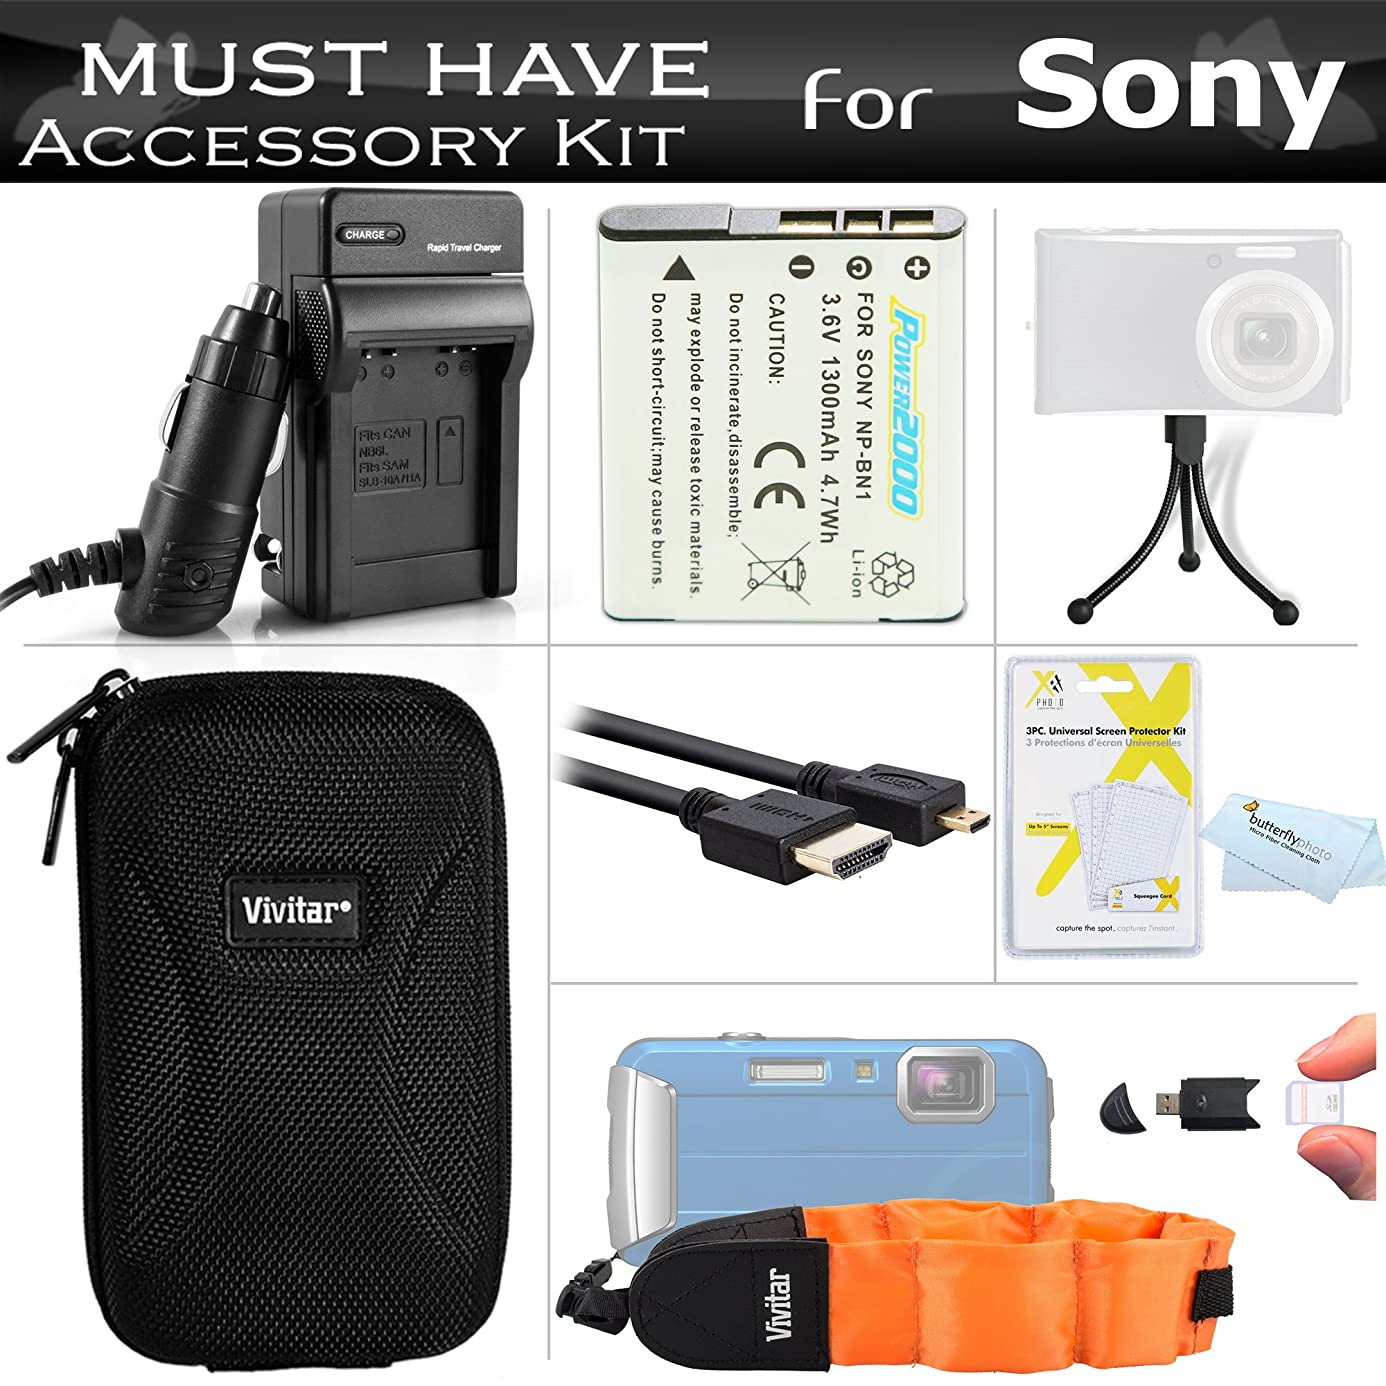 Must Have Accessory Kit For Sony Cyber-shot DSC-TX200V, DSC-TF1, DSC-TX30 Waterproof Digital Camera Includes Replacement NP-BN1 Battery + Ac/Dc Charger + Micro HDMI Cable + Float Strap + Case + More czc3211270